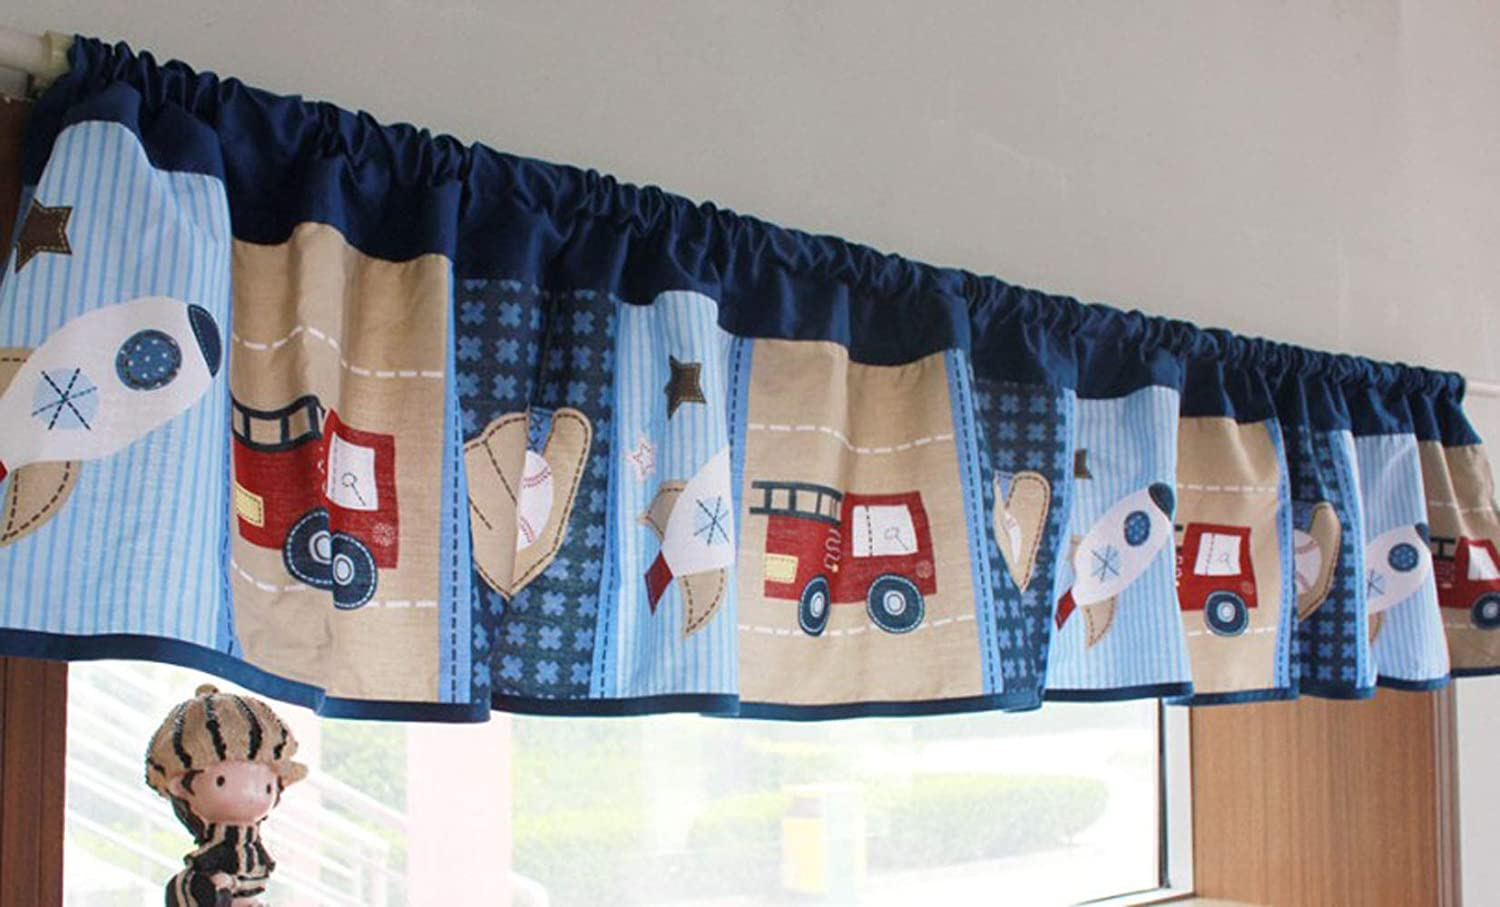 Amazon.com: CribMATE Nursery Room Window Valance Pink Floral Window Valance/Navy Blue Rocket Fire Engine Window Valance Baby Boy/Girl Gift Idea (Blue): Furniture & Decor